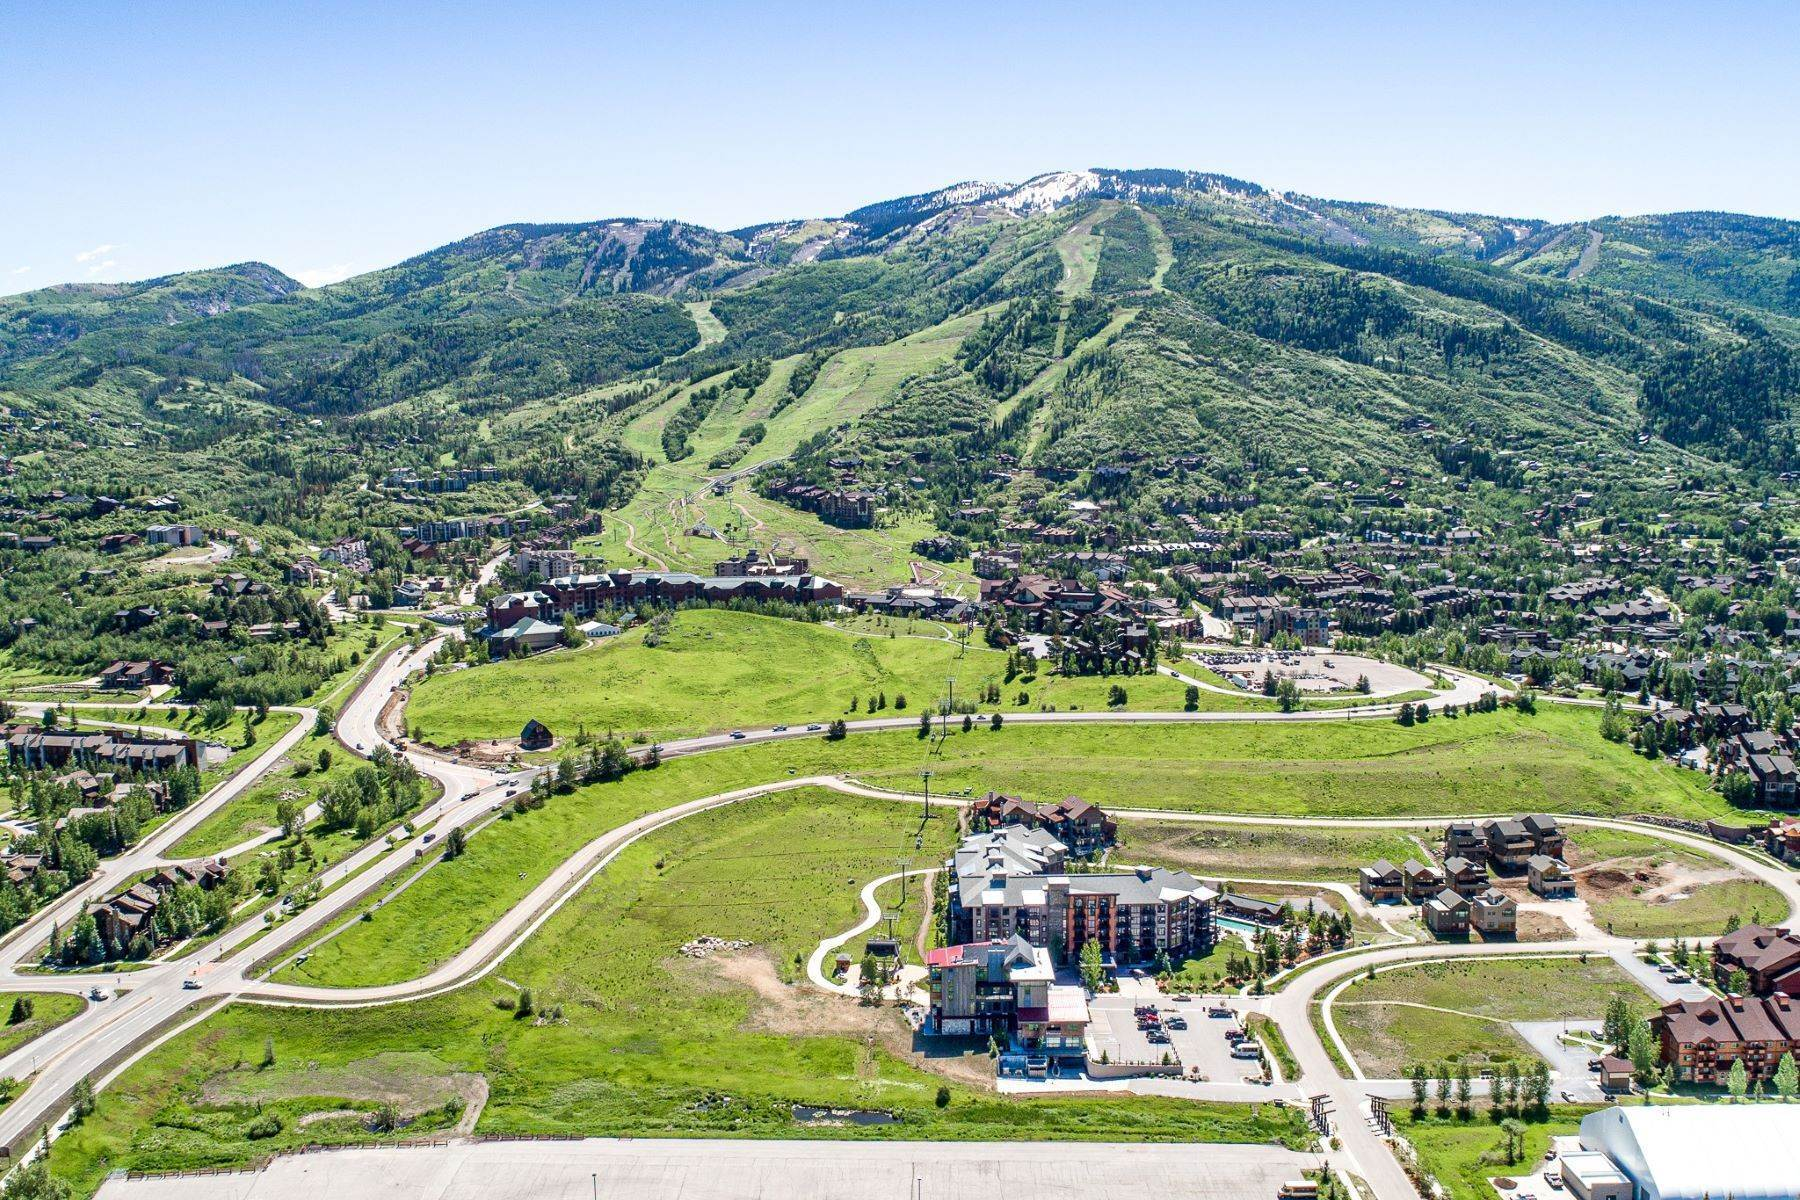 Property for Sale at Prime Ski Resort Development Land 1200 Mt Werner Road Steamboat Springs, Colorado 80487 United States